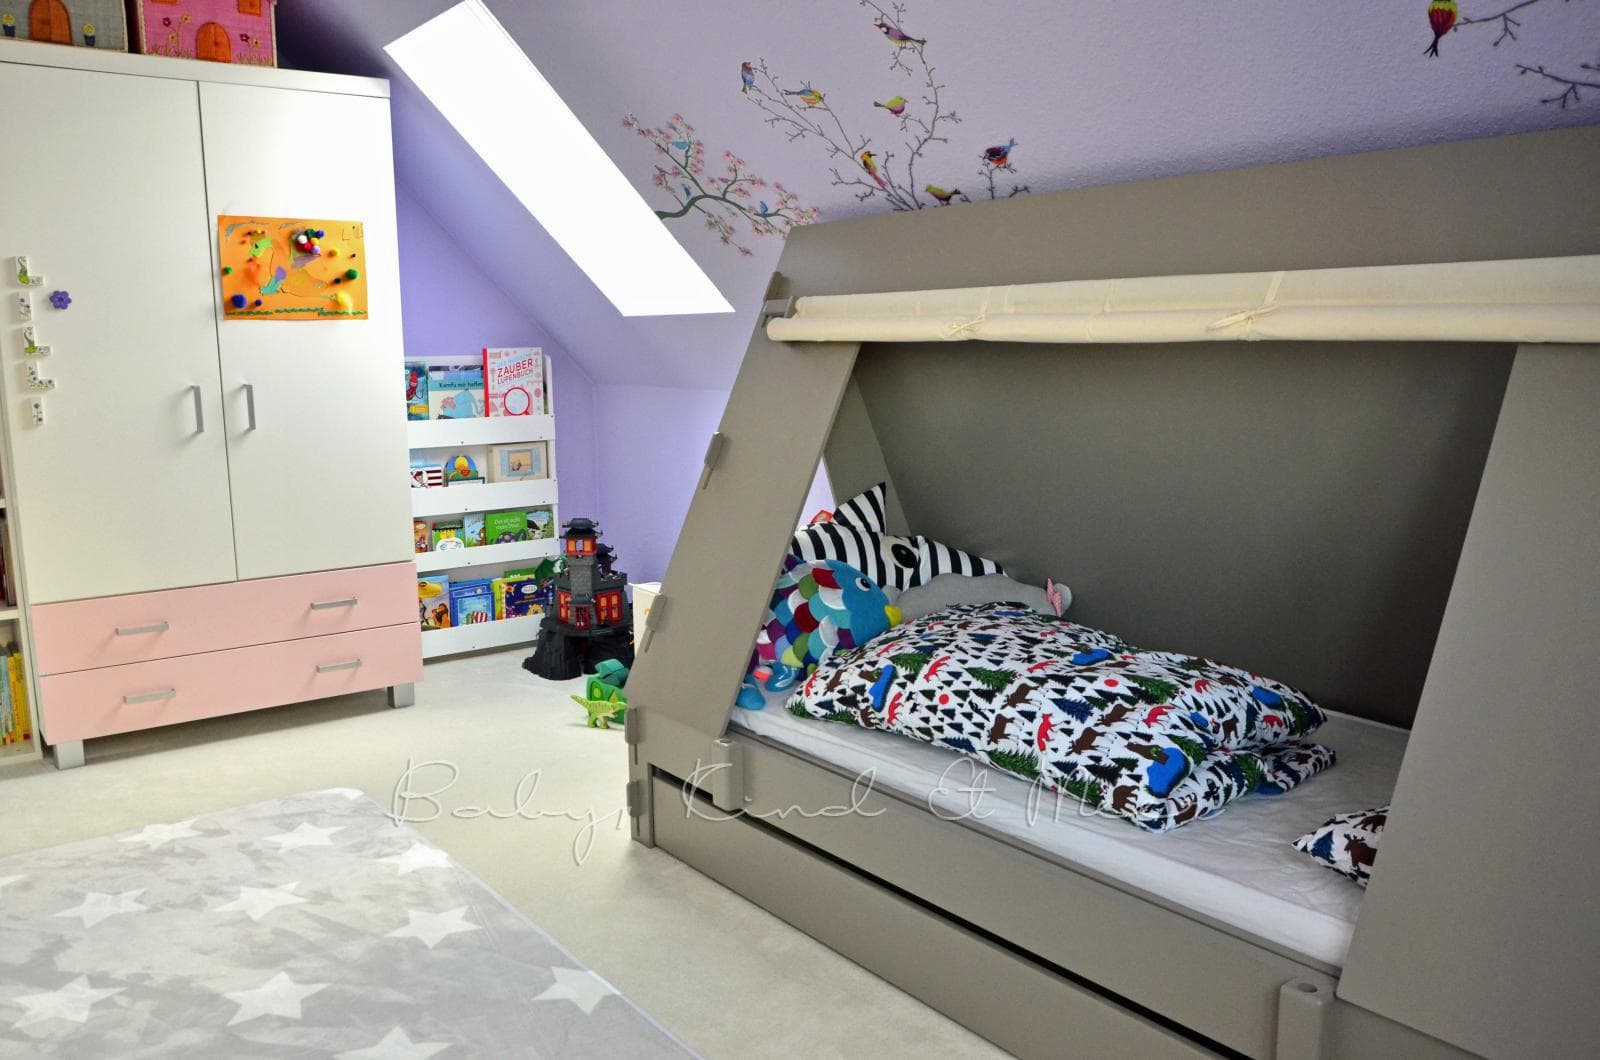 Unsere neuen kinderzimmer   interior design & furniture, family ...